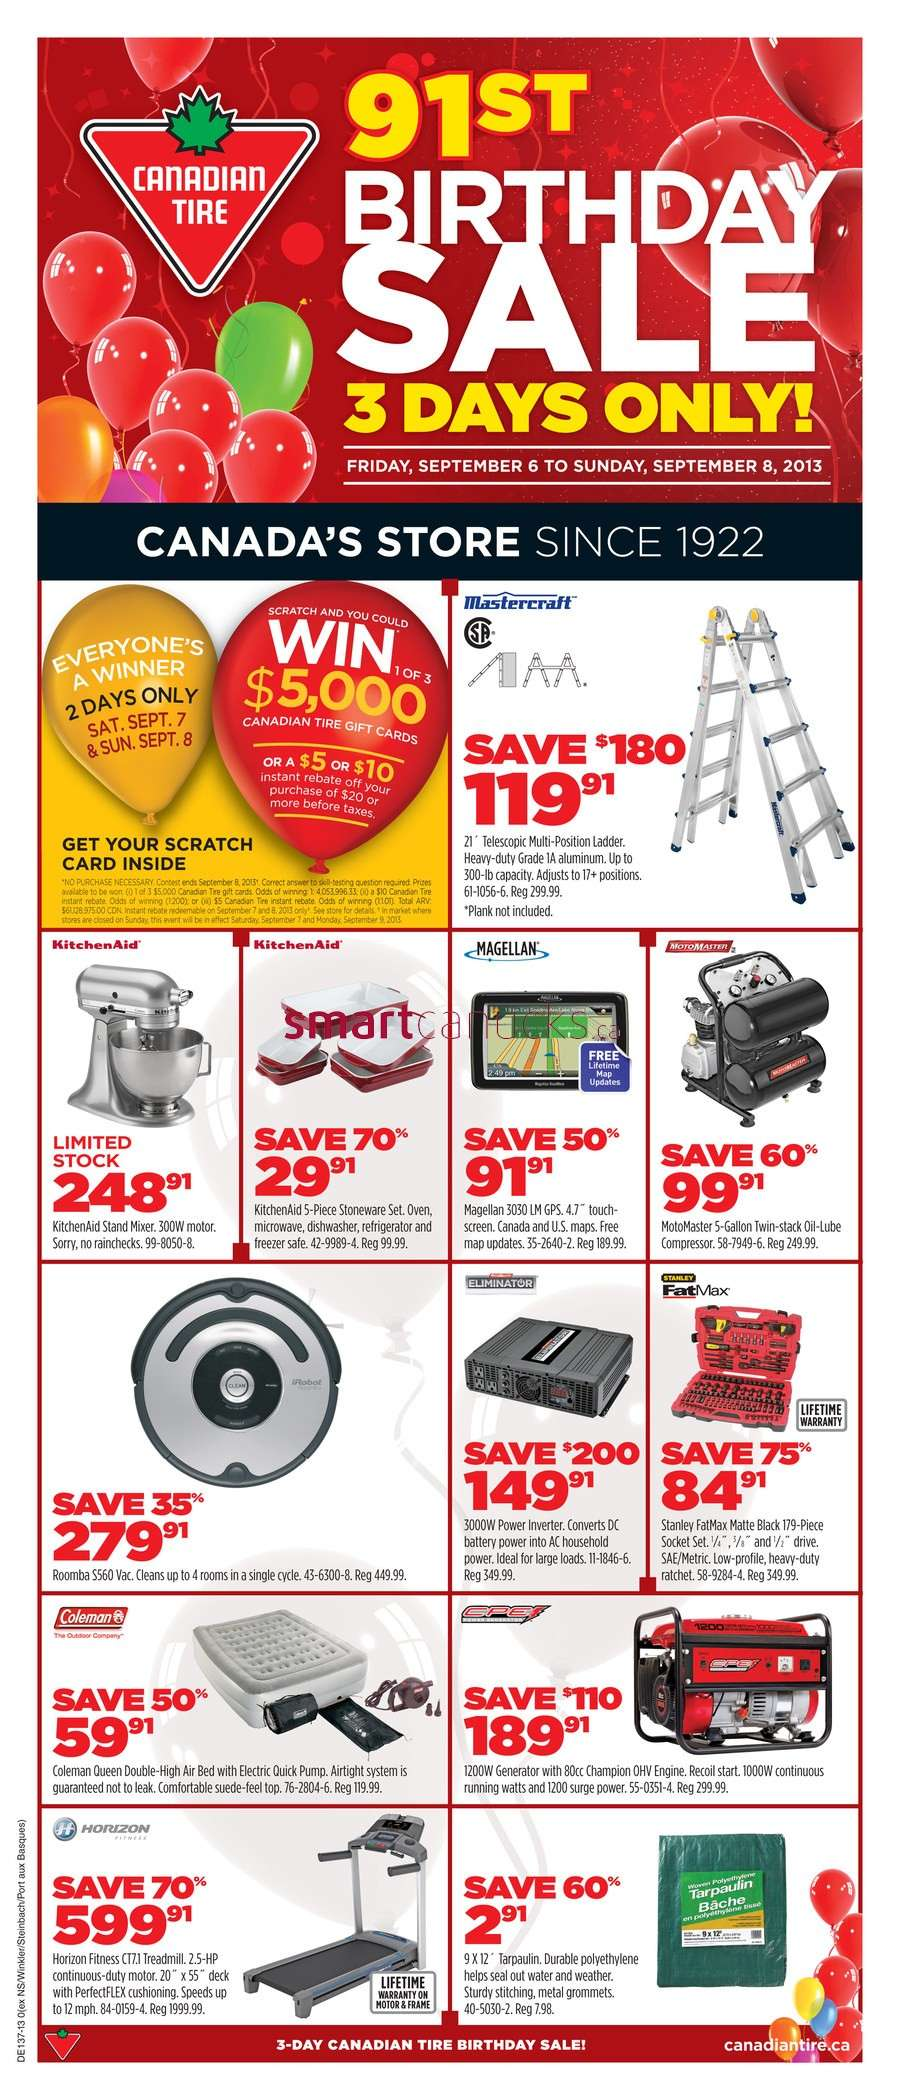 Canadian Tire Birthday Sale flyer September 6 to 8